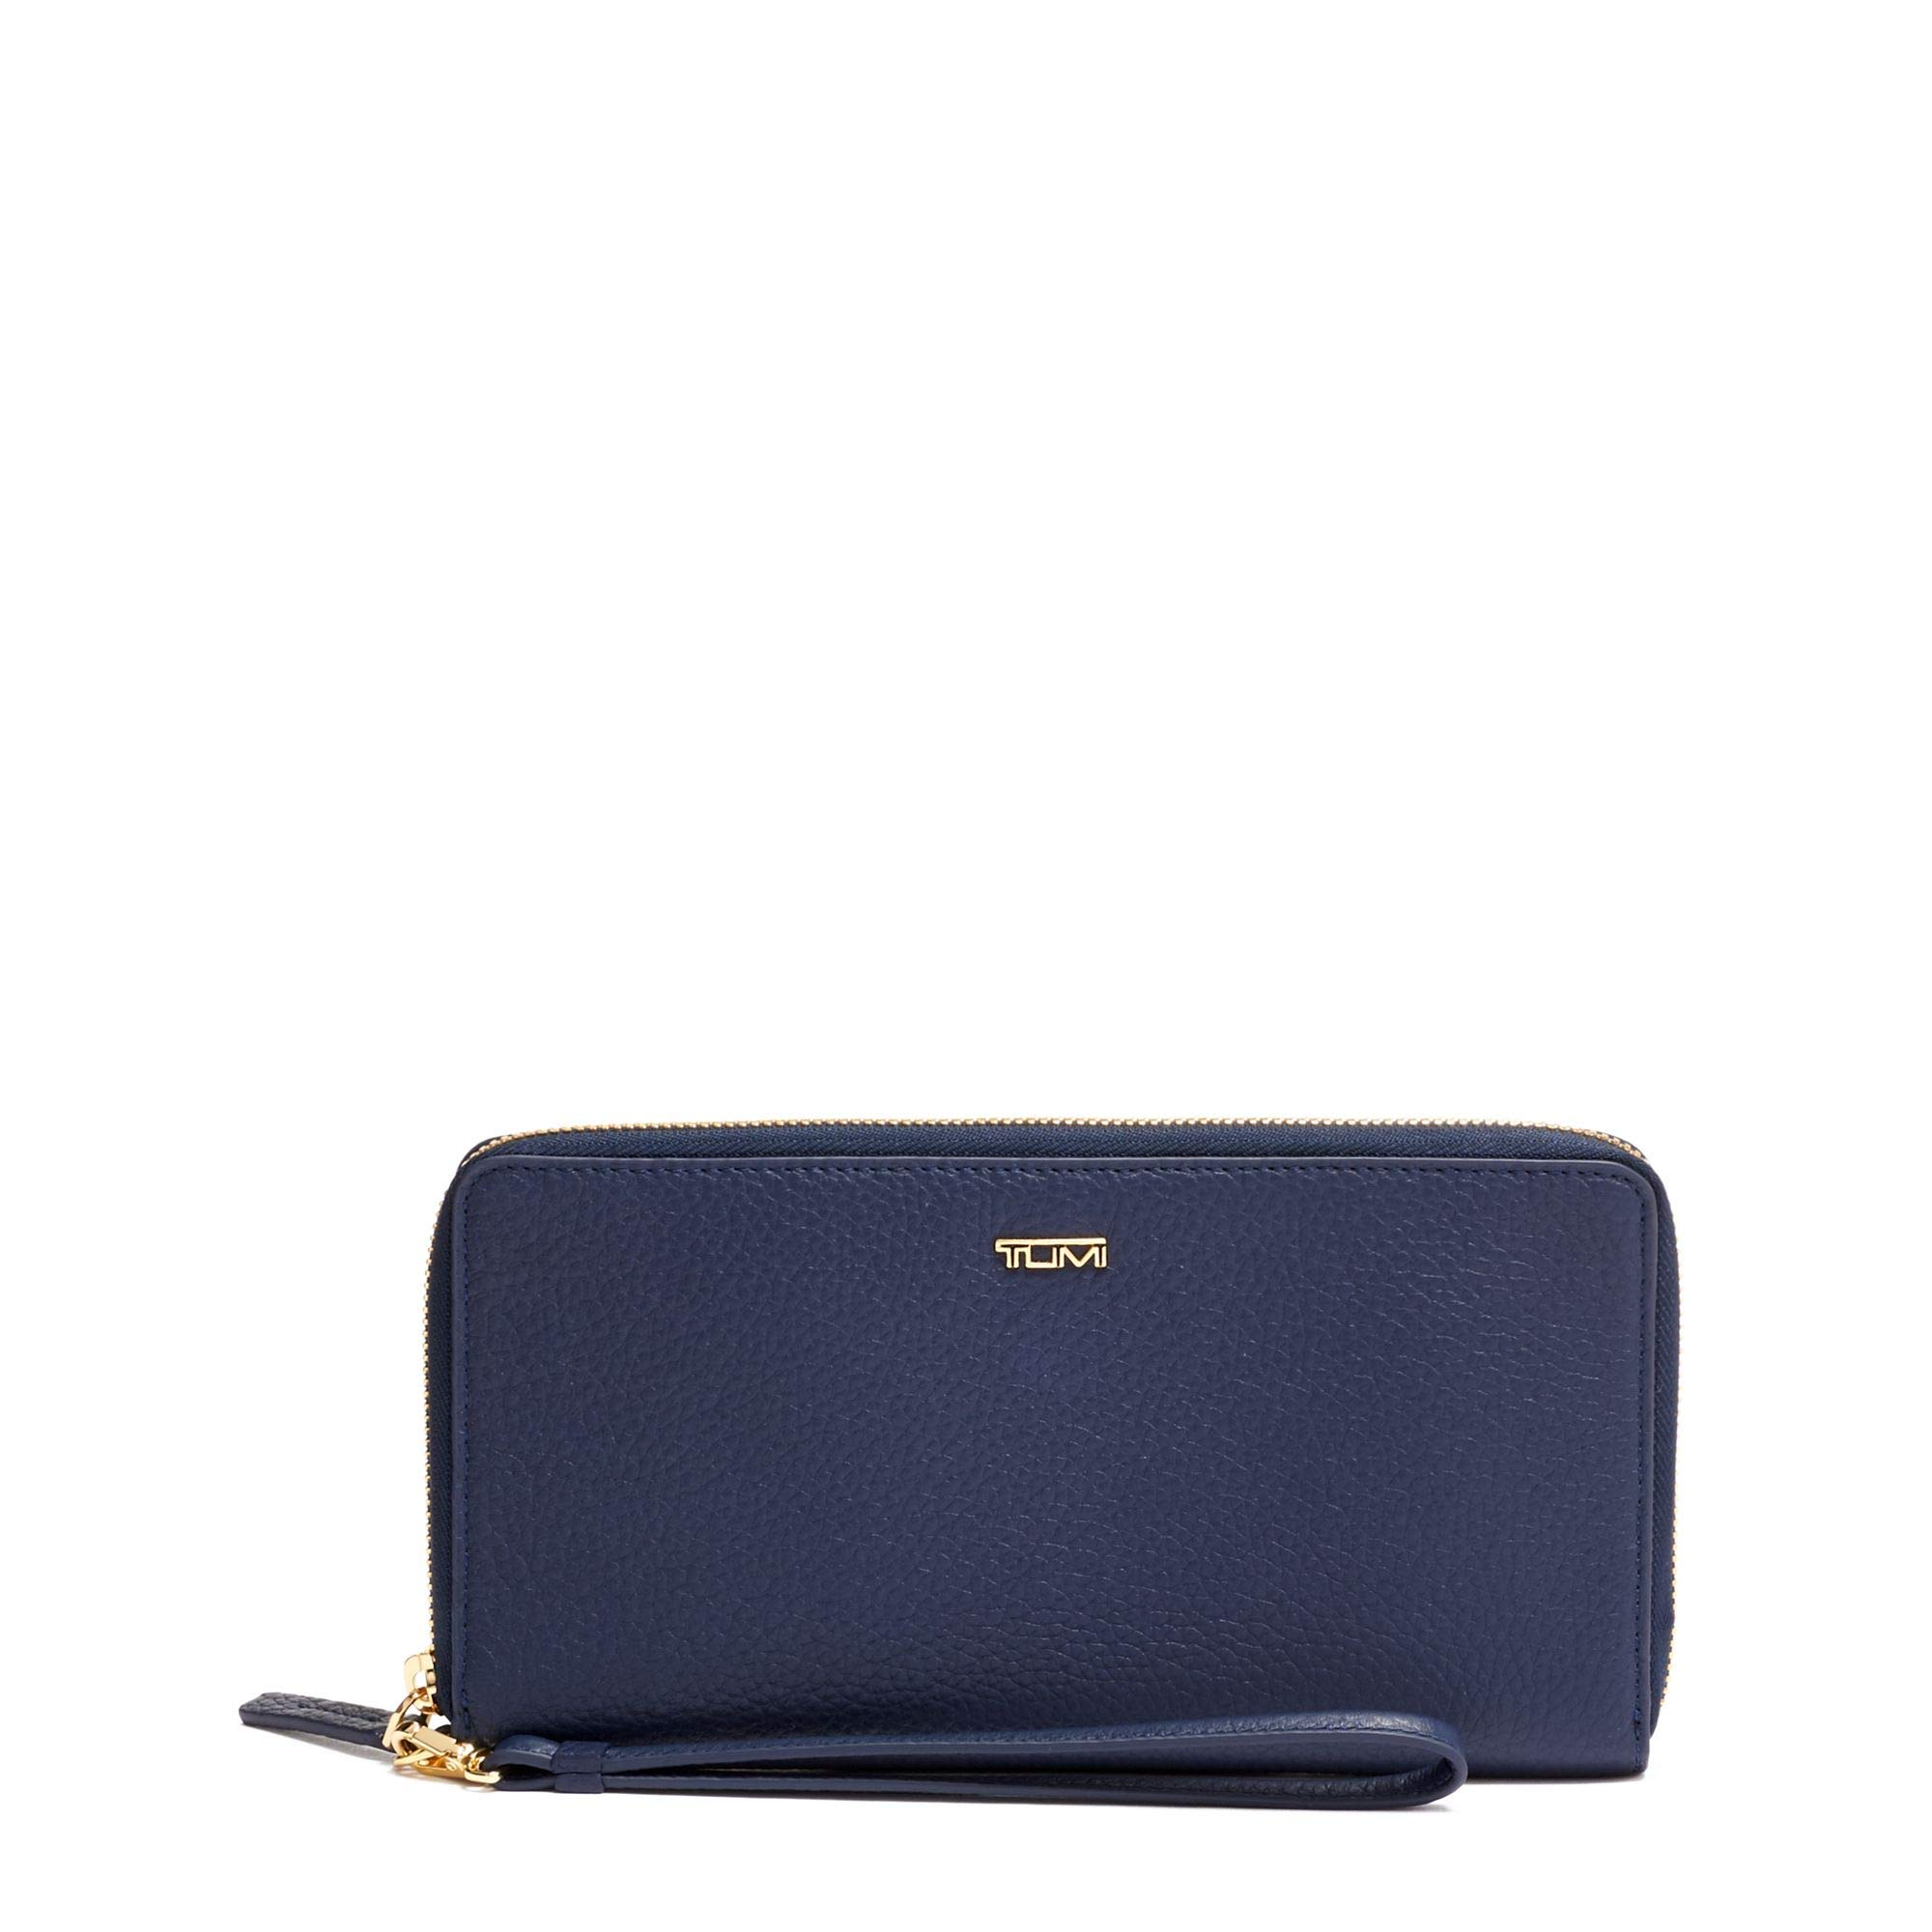 TUMI - Belden Travel Wallet - Ultramarine